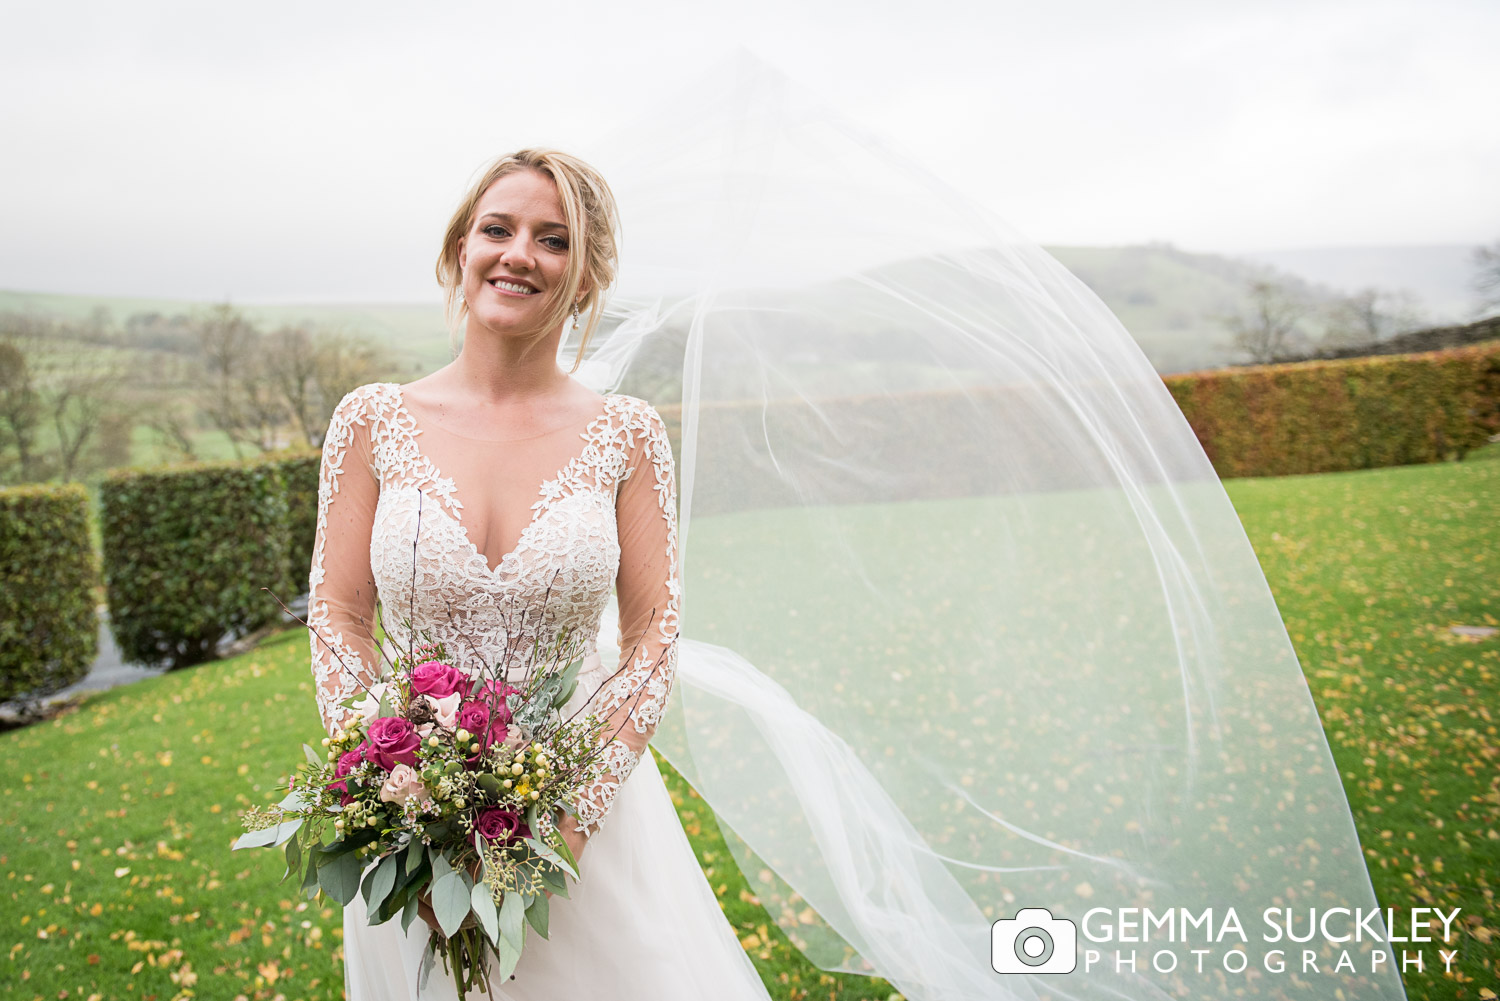 the brides veil blowing in the wind outside The Devonshire Fell in Burnsall